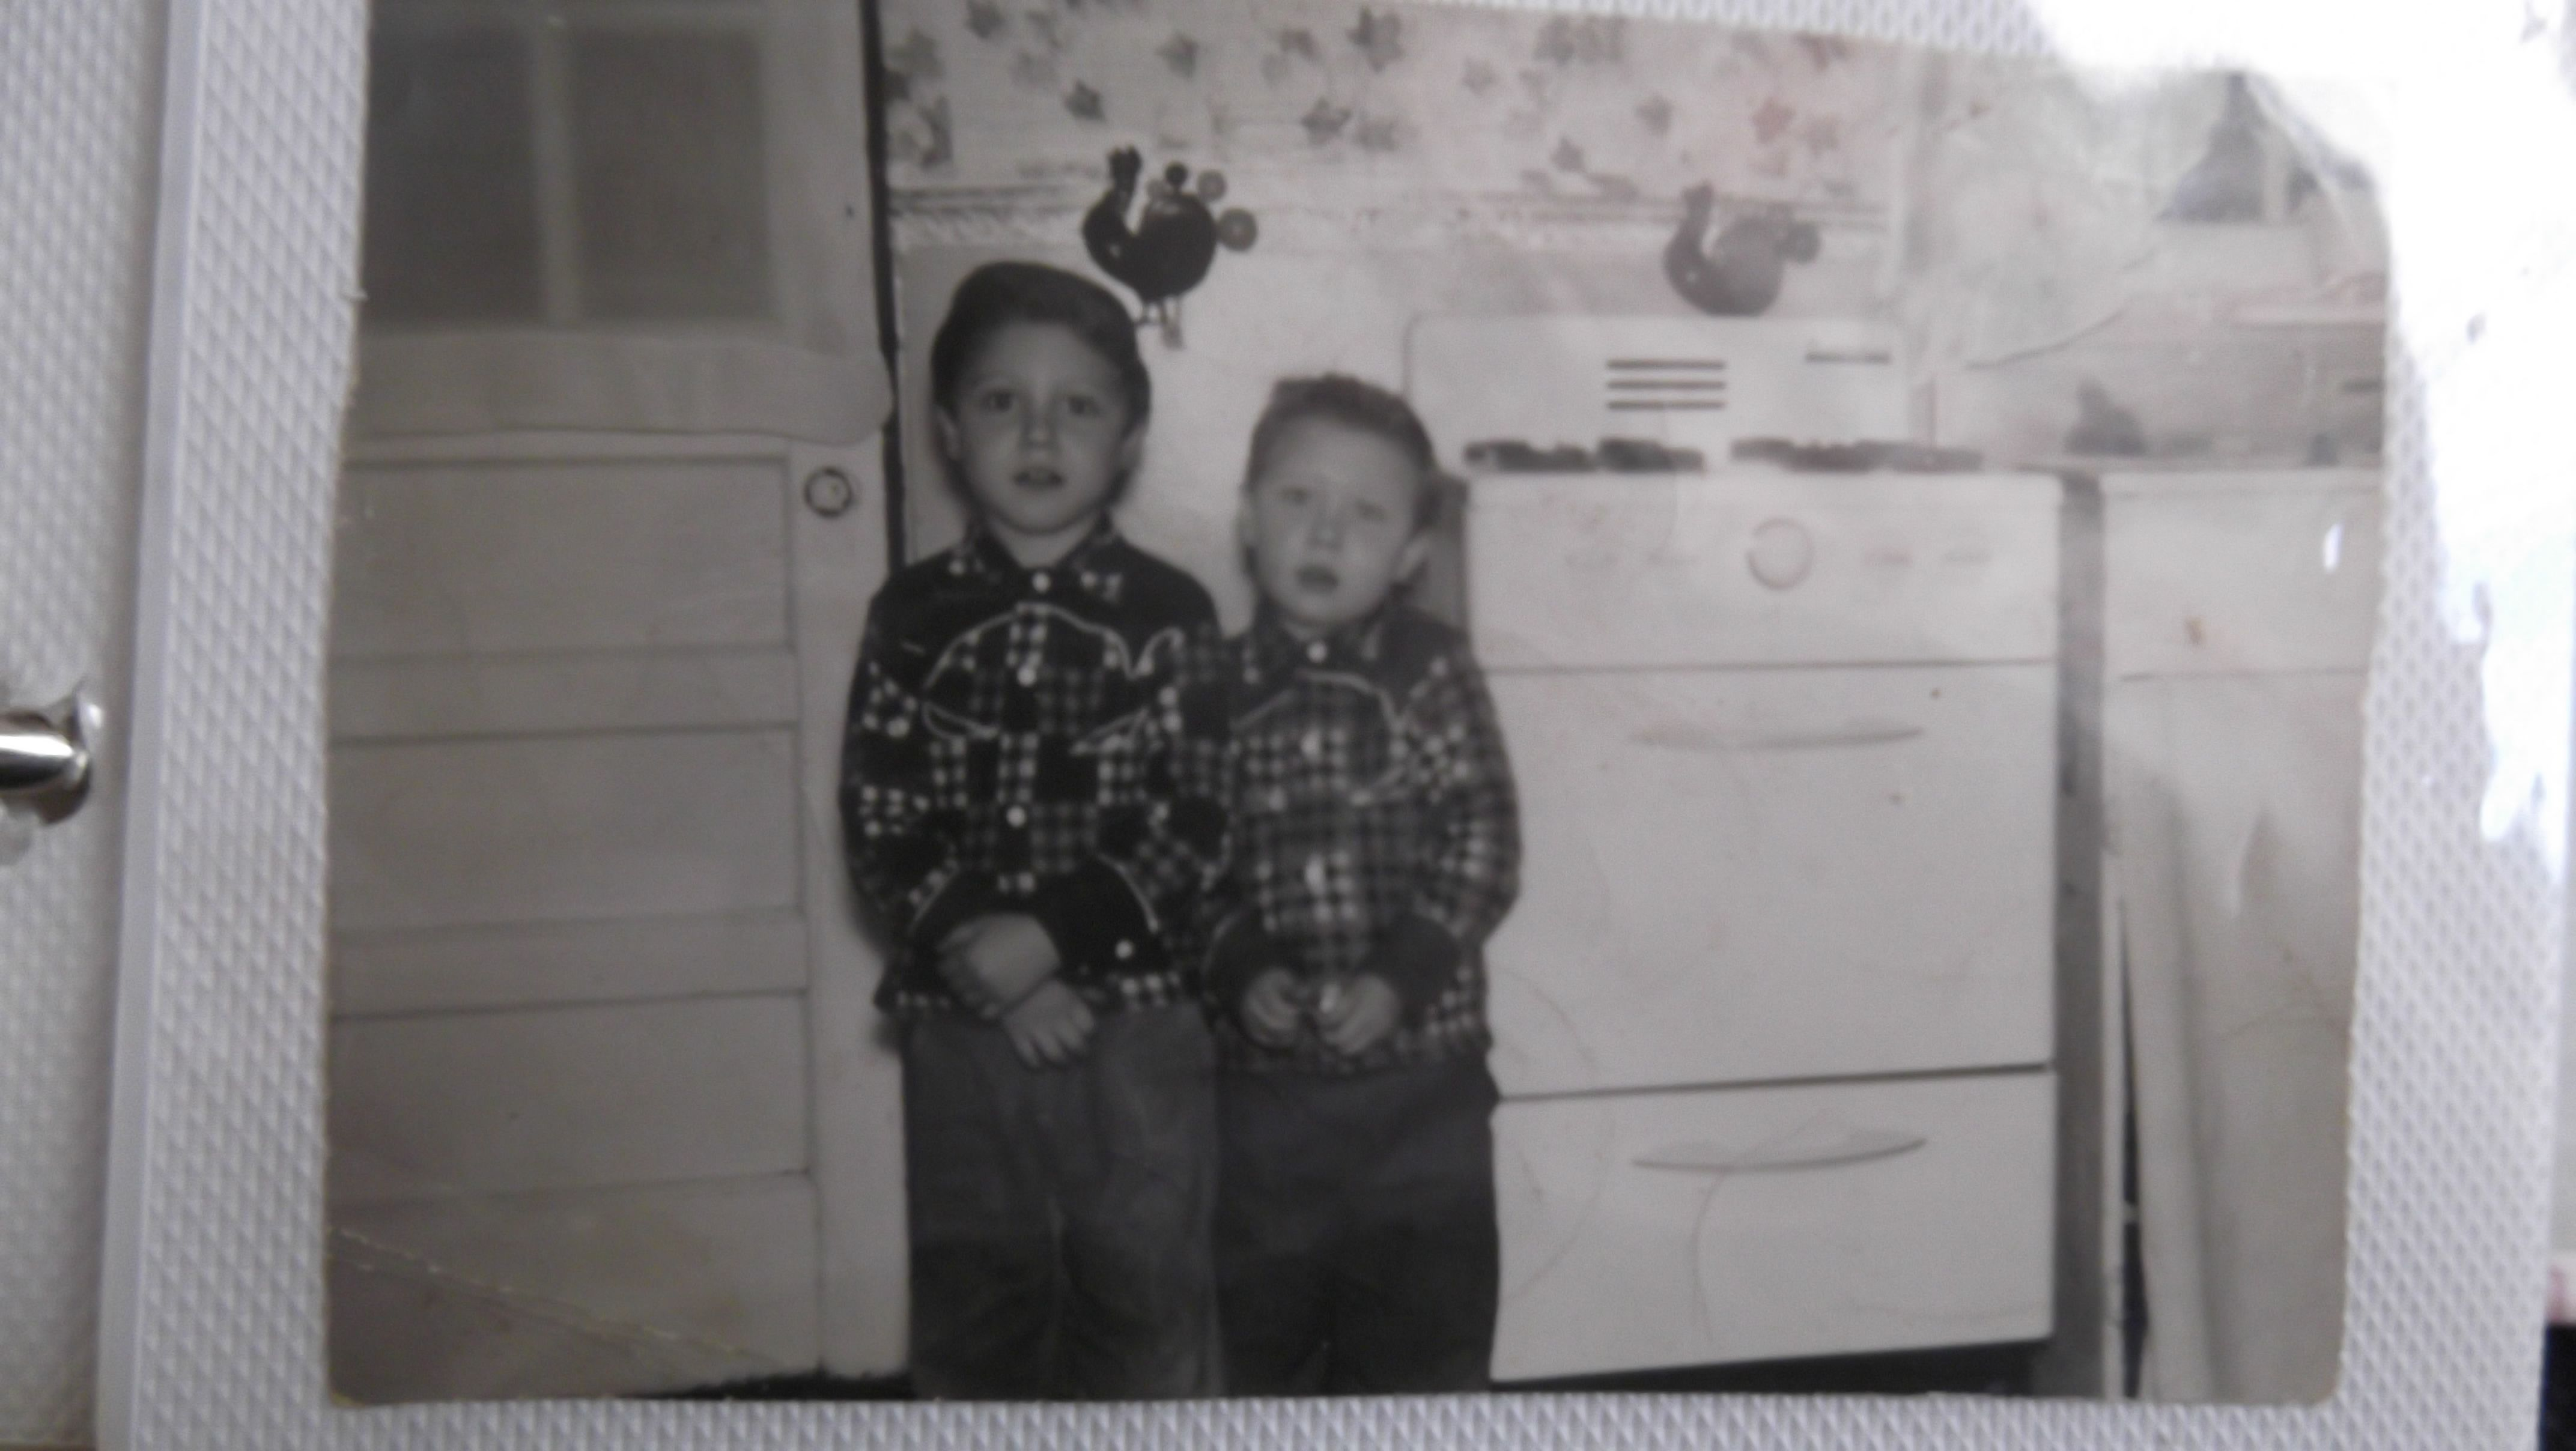 My brothers in the kitchen in the old Willow Run Village taken circa 1954